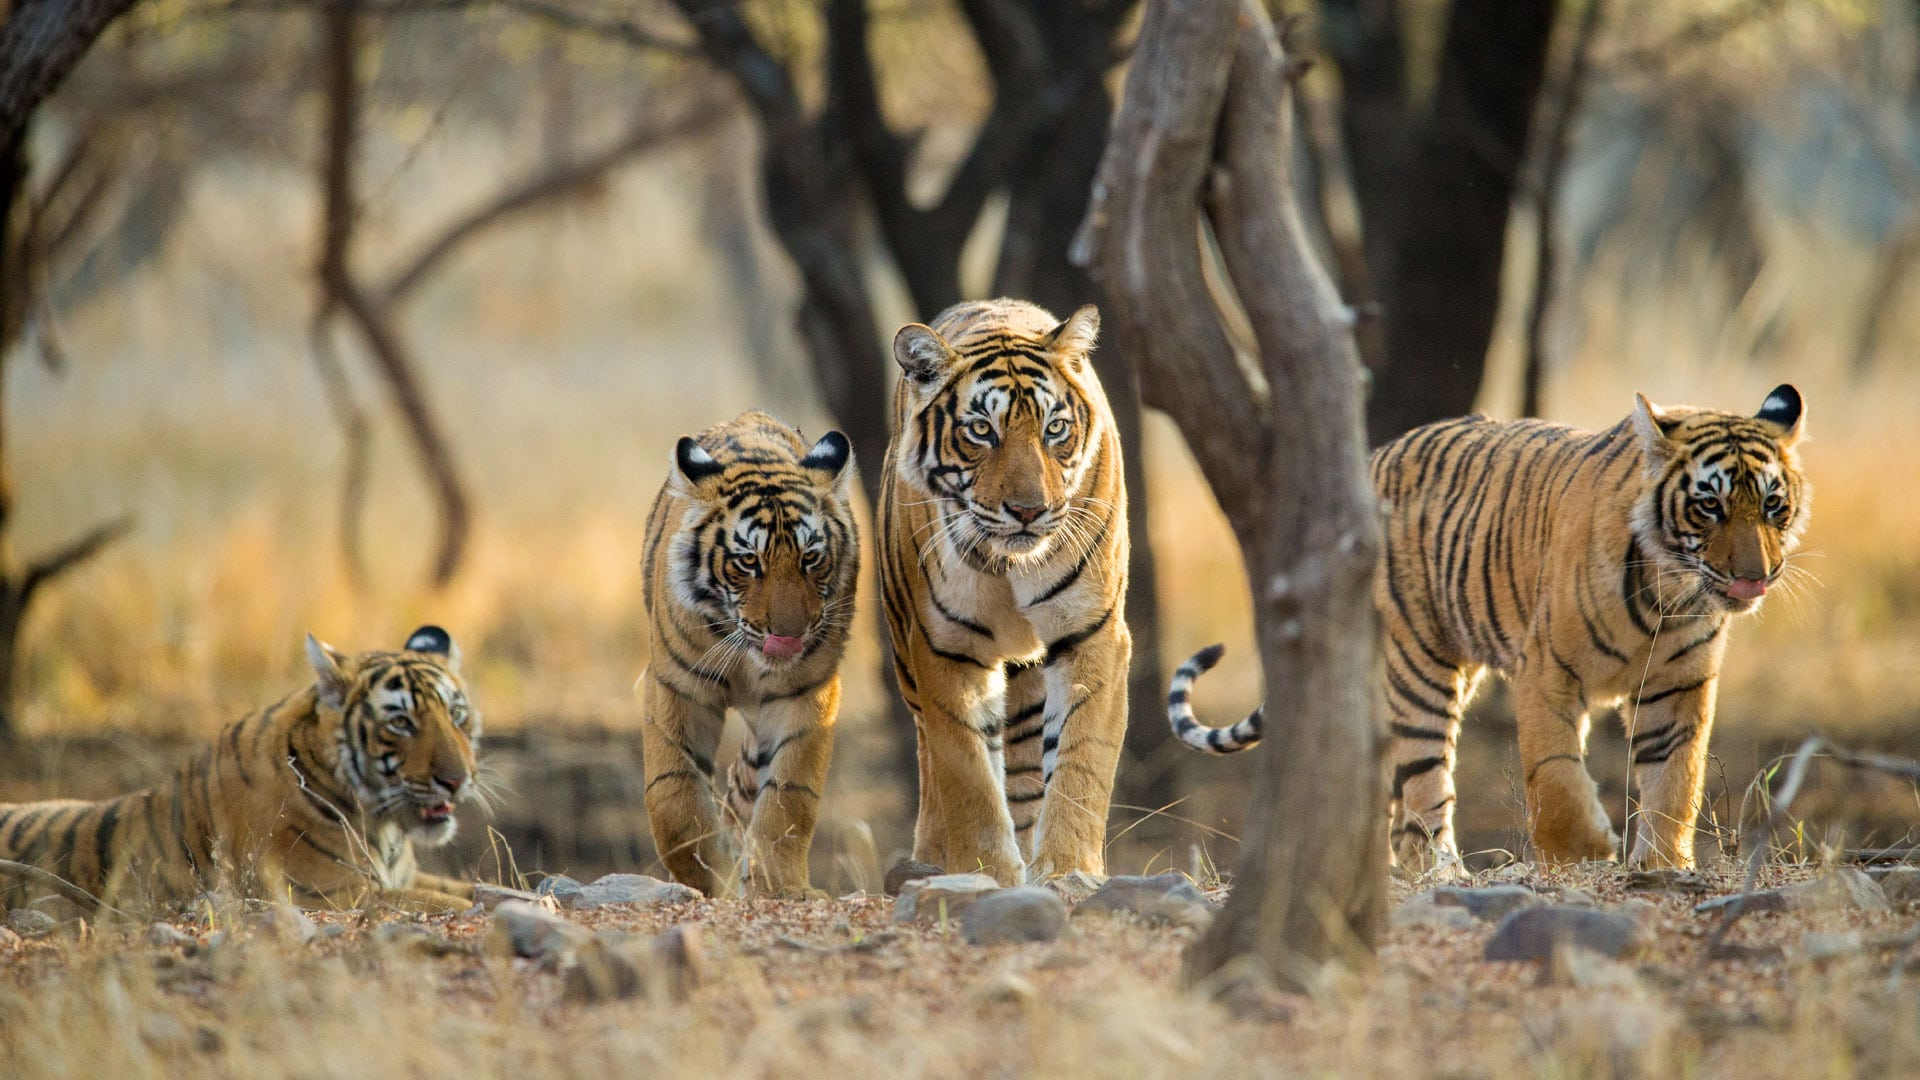 Tigers of Central India and the Golden Triangle